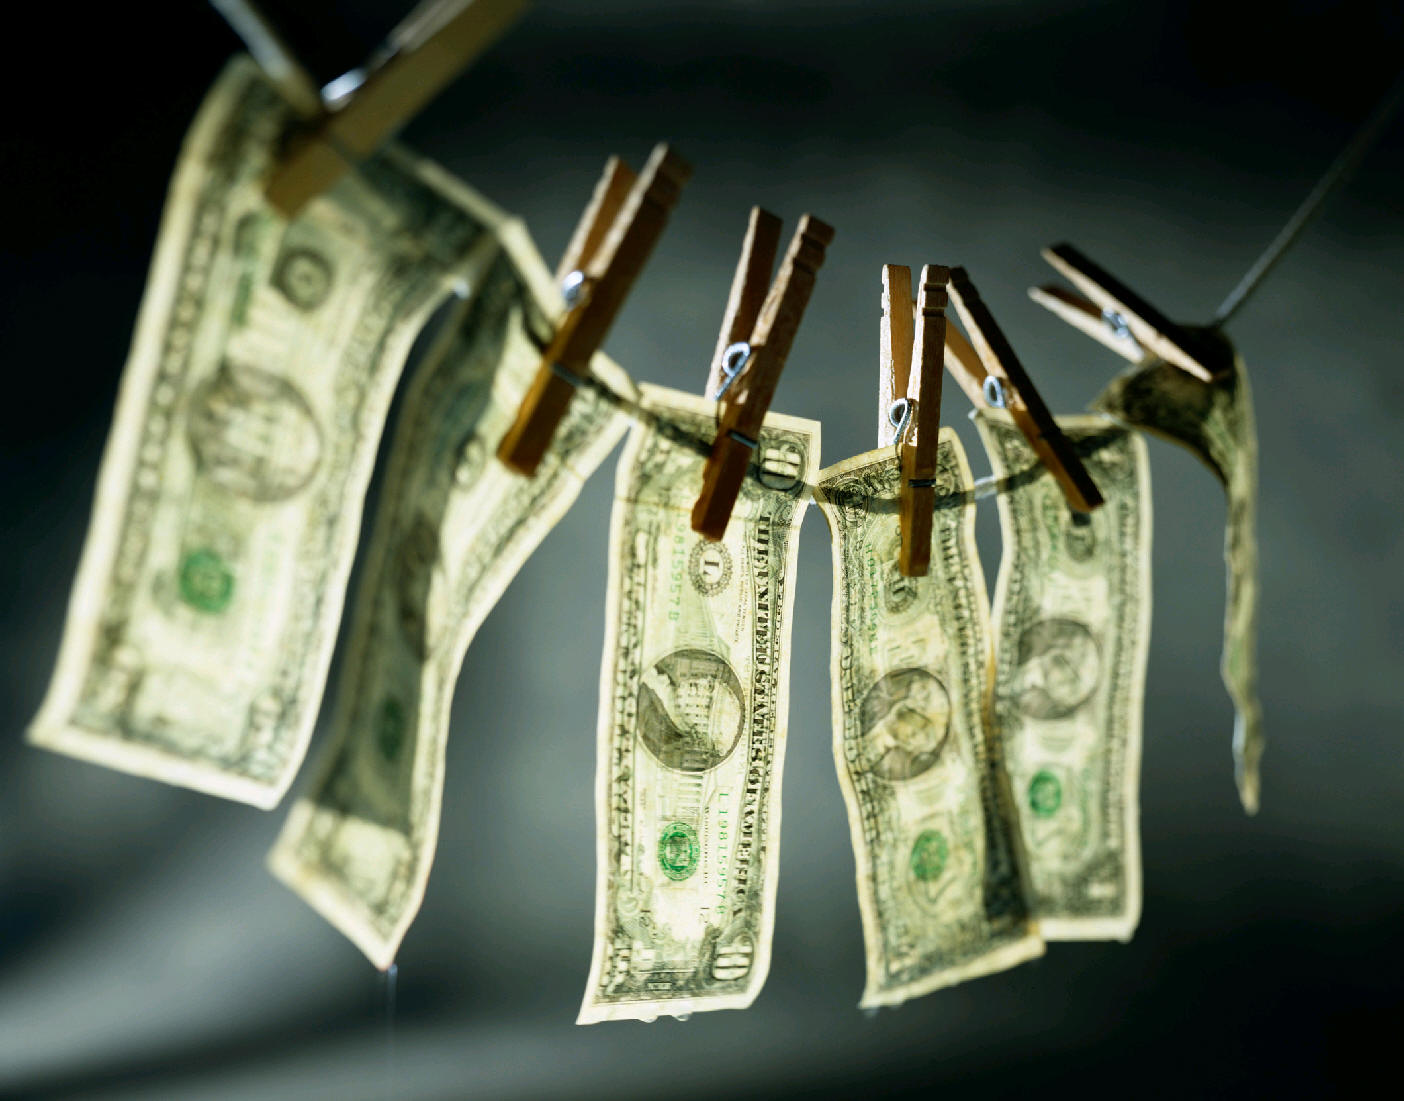 10 Most Notorious Money Laundering Cases of the 20th Century